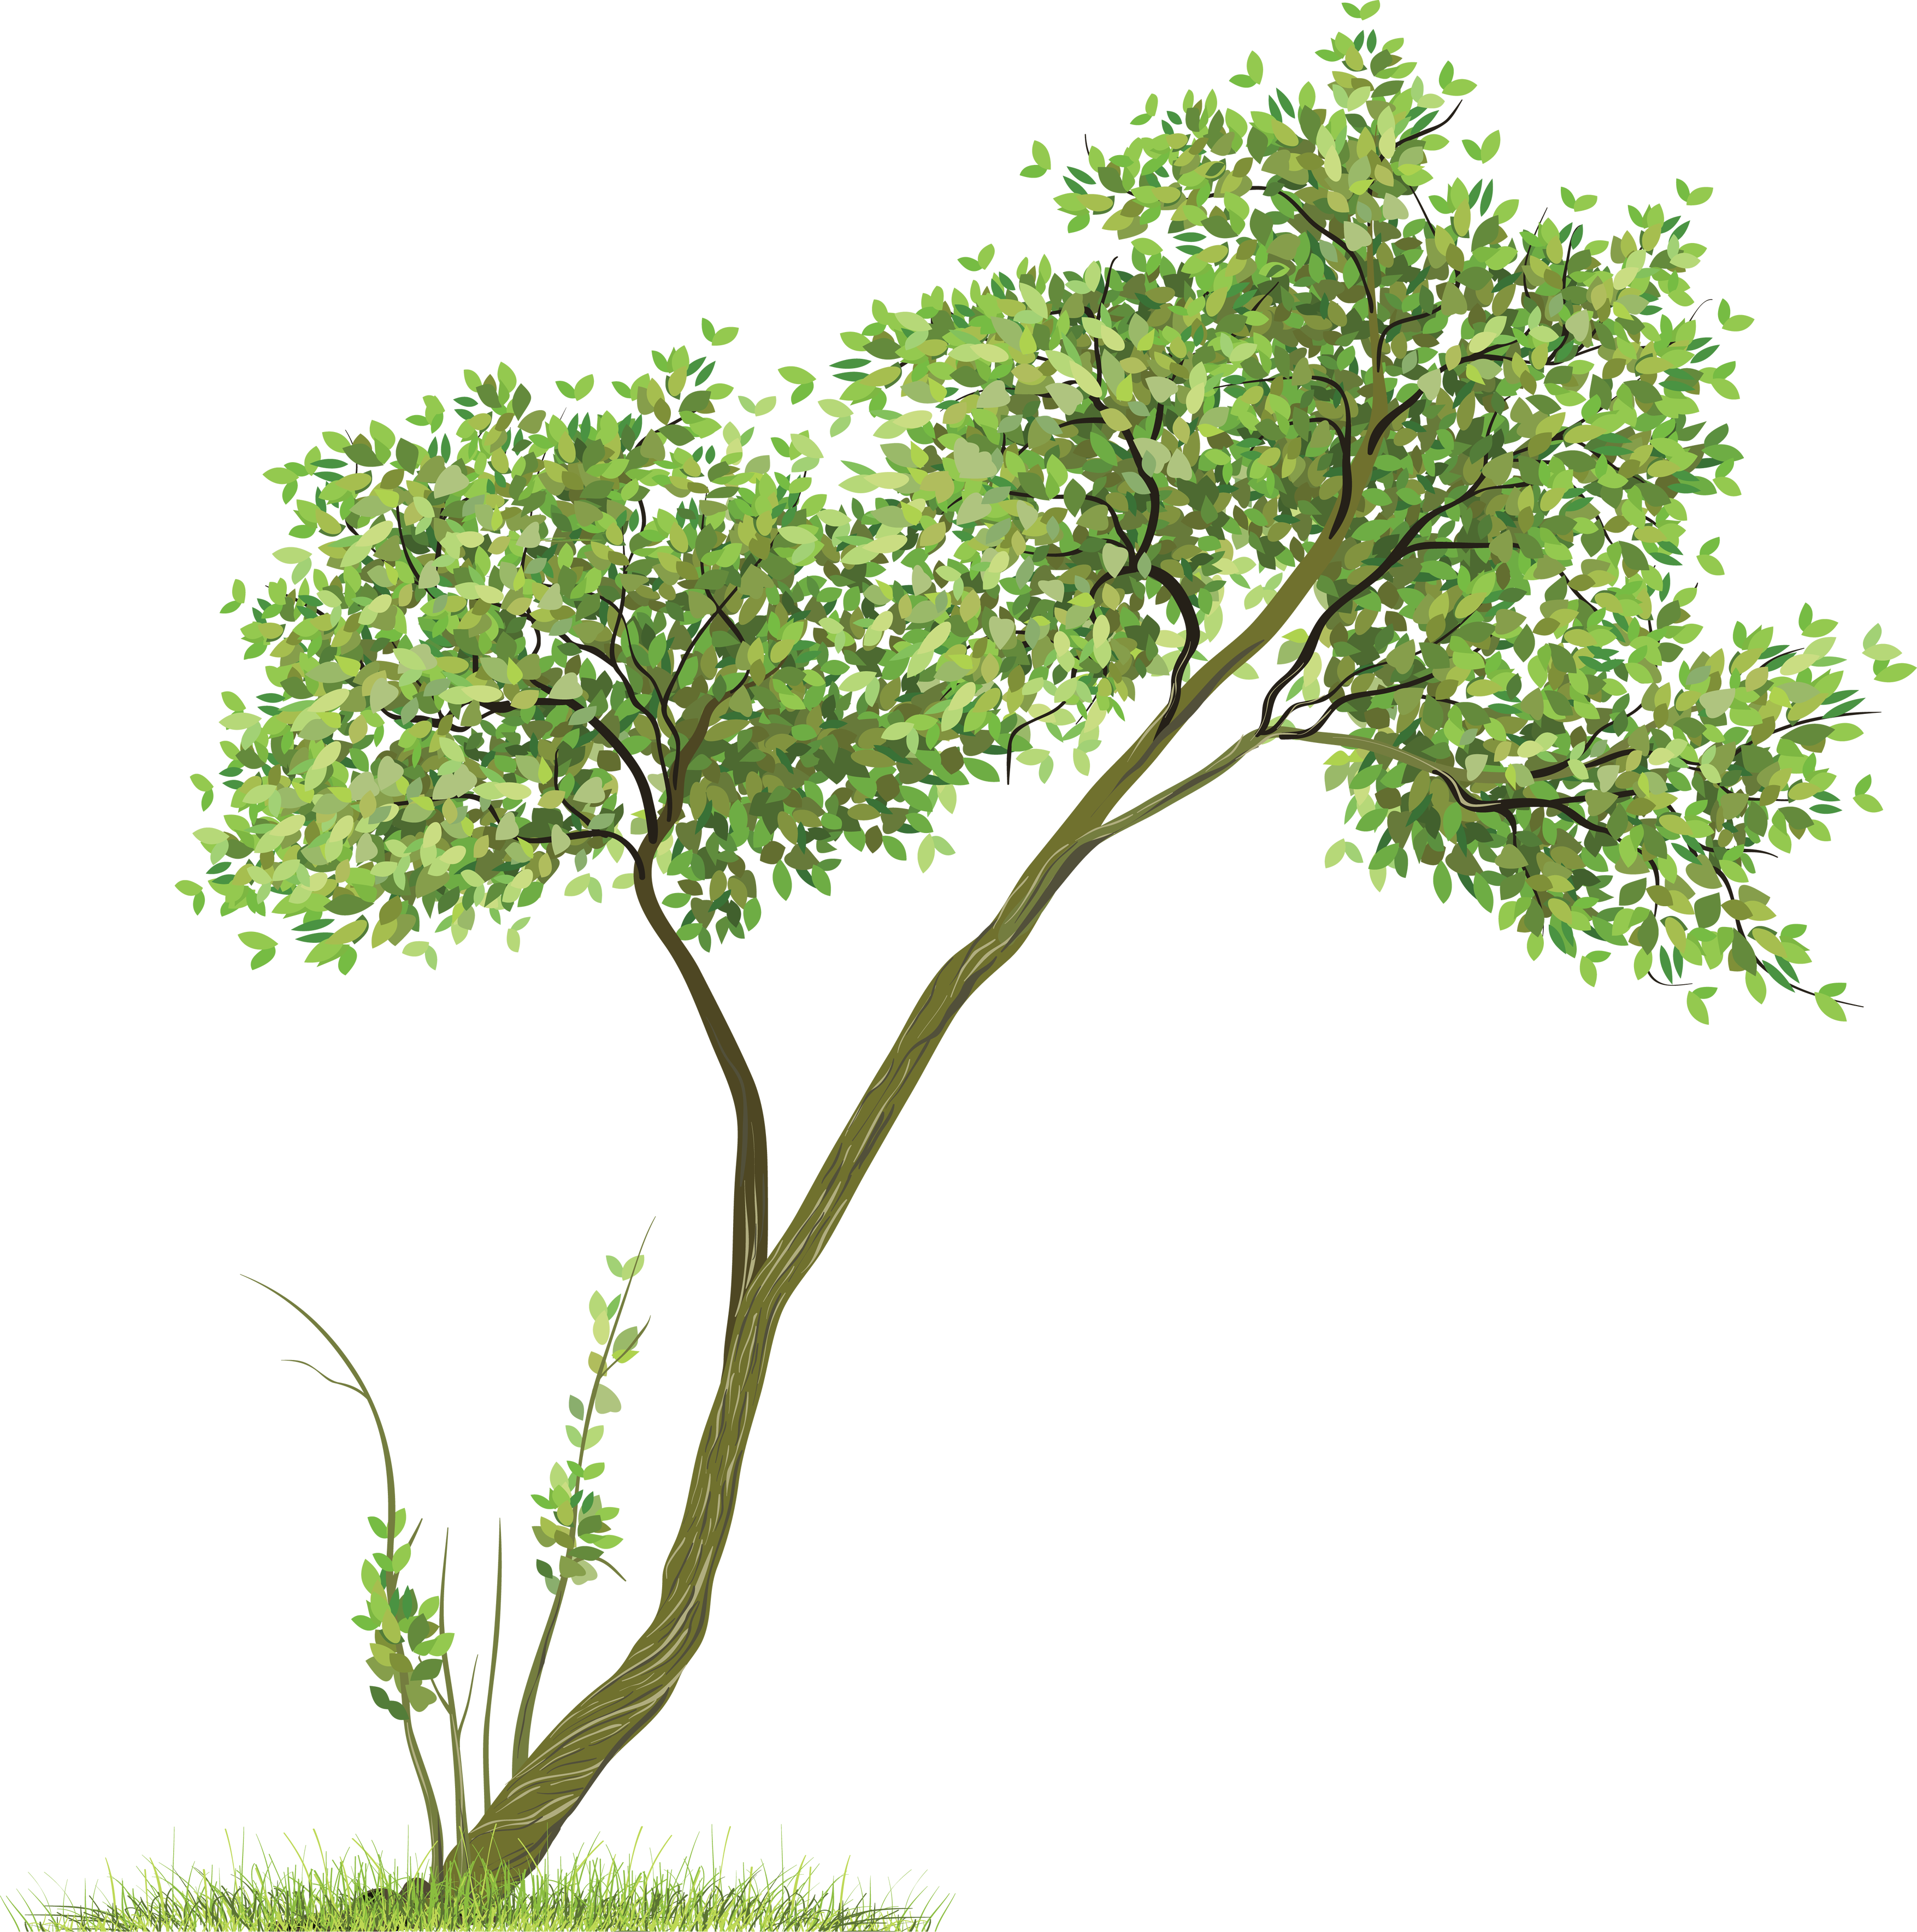 tree png image